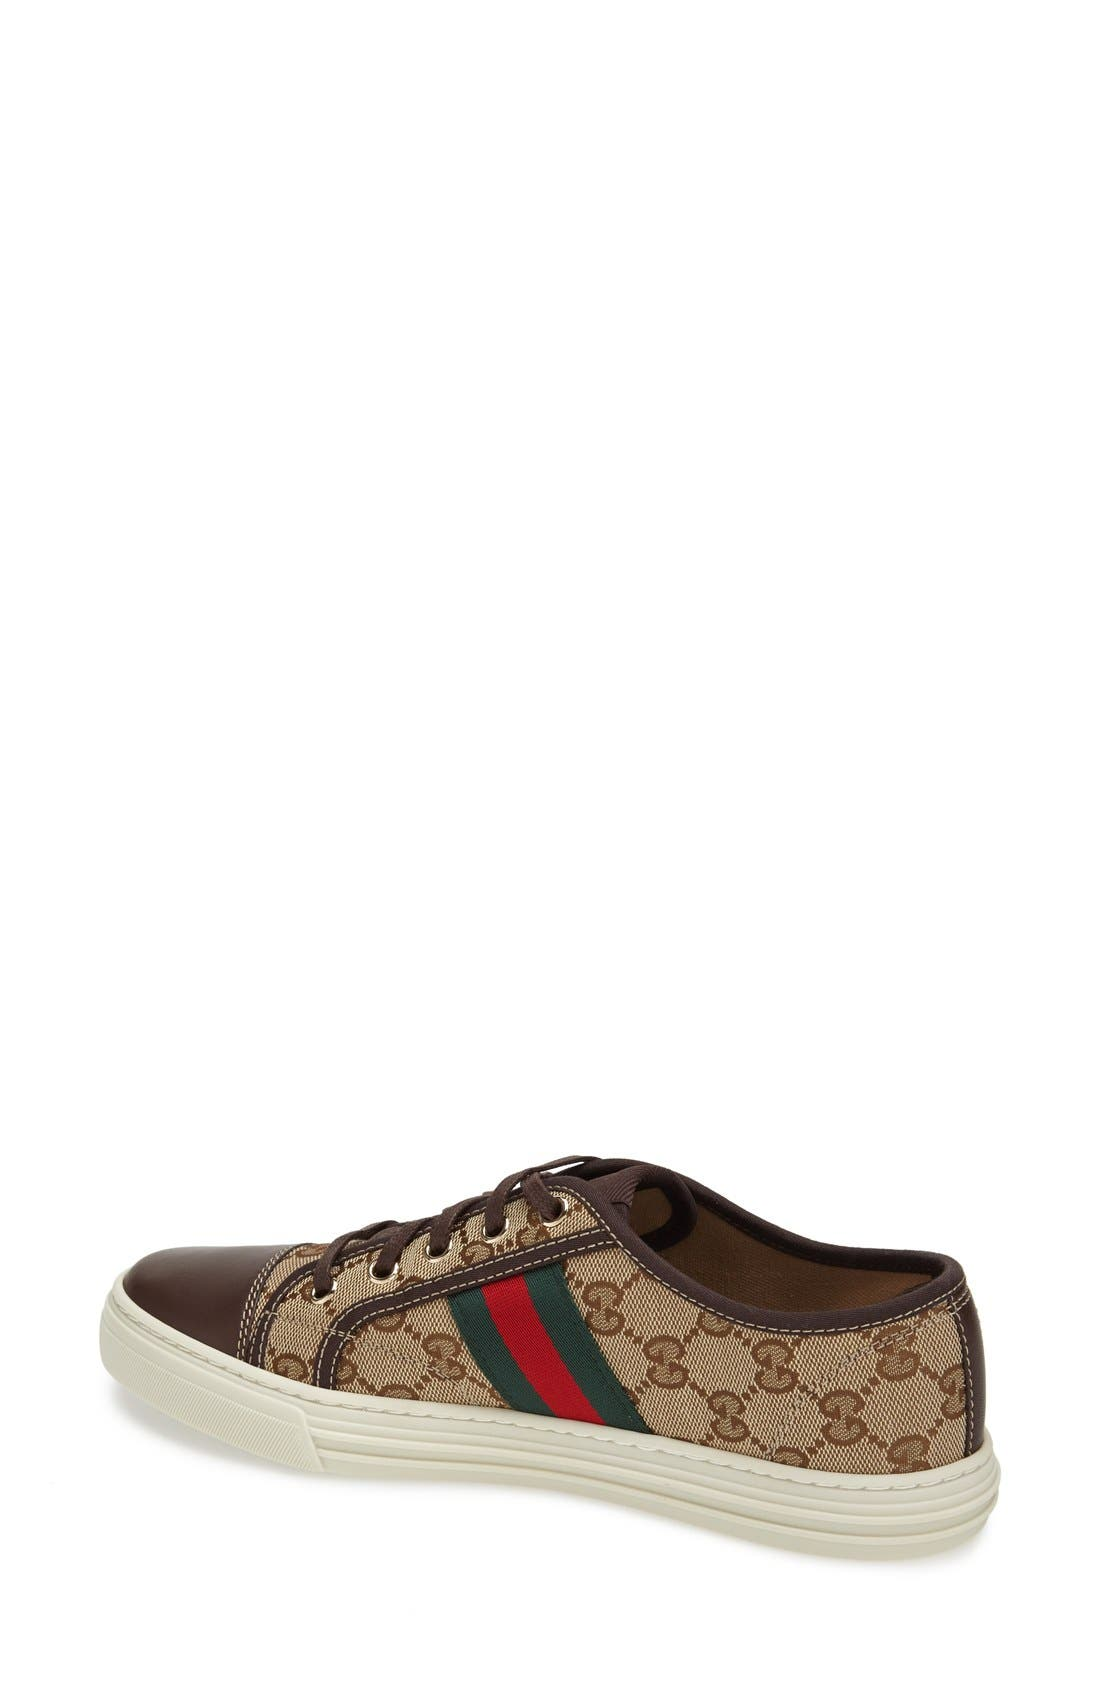 Alternate Image 2  - Gucci 'California' Sneaker (Women)